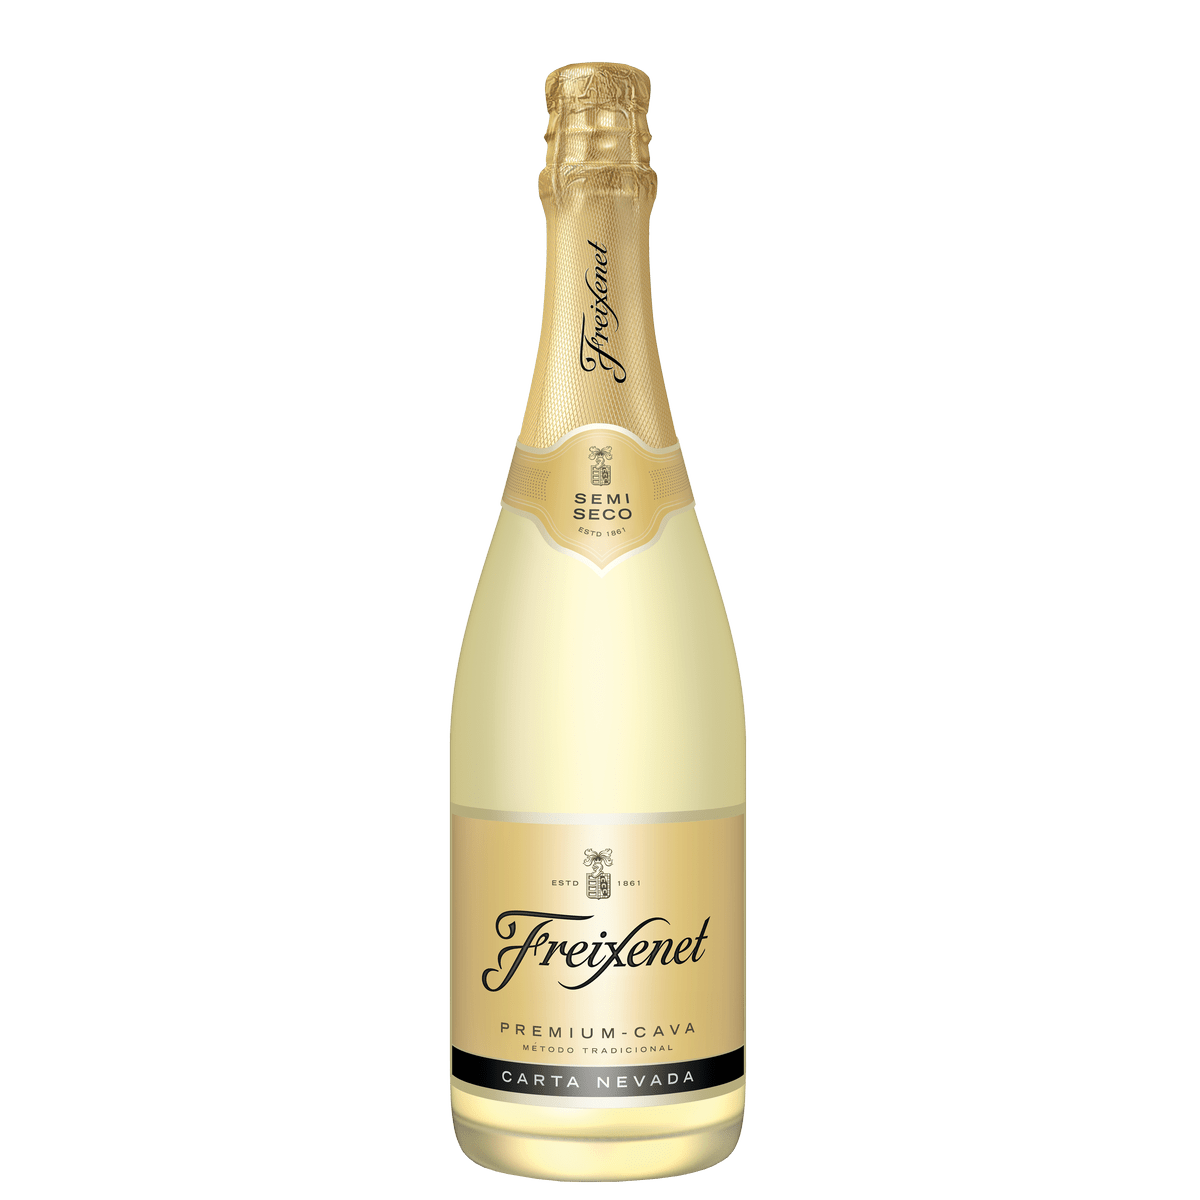 Angebote Sekt Freixenet Carta Nevada Semi Seco 75l Sekt Sekt And Co